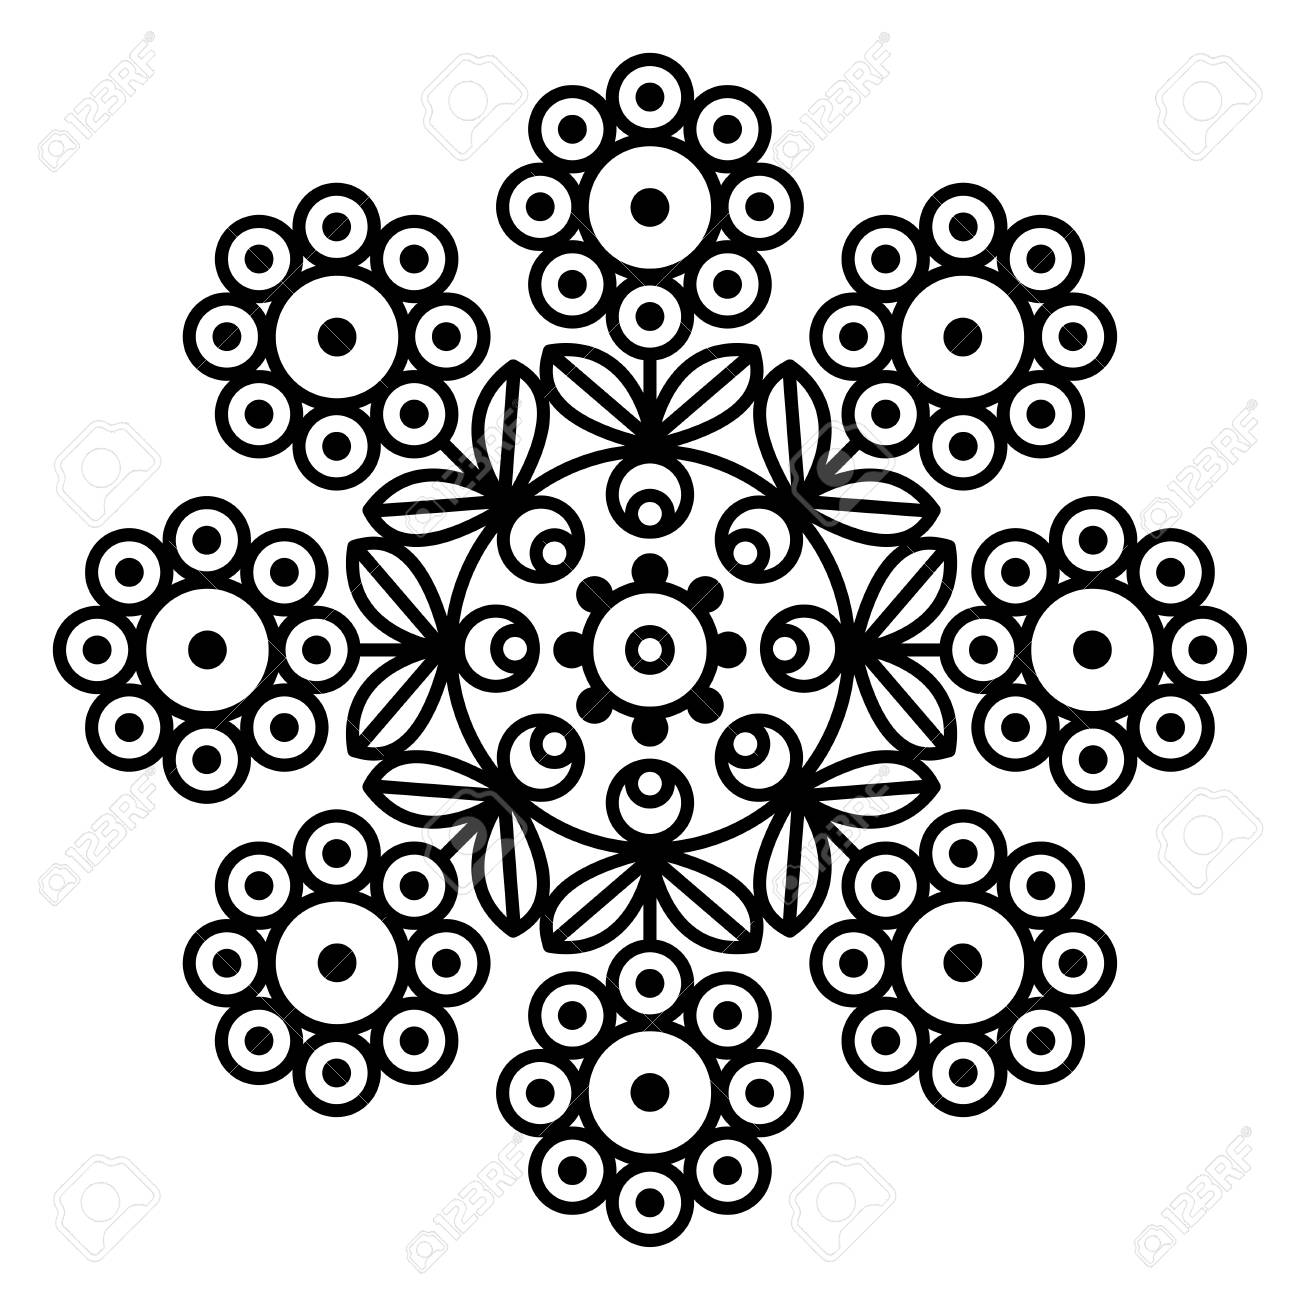 Simple Floral Mandala Print Easy Coloring Page Illustration